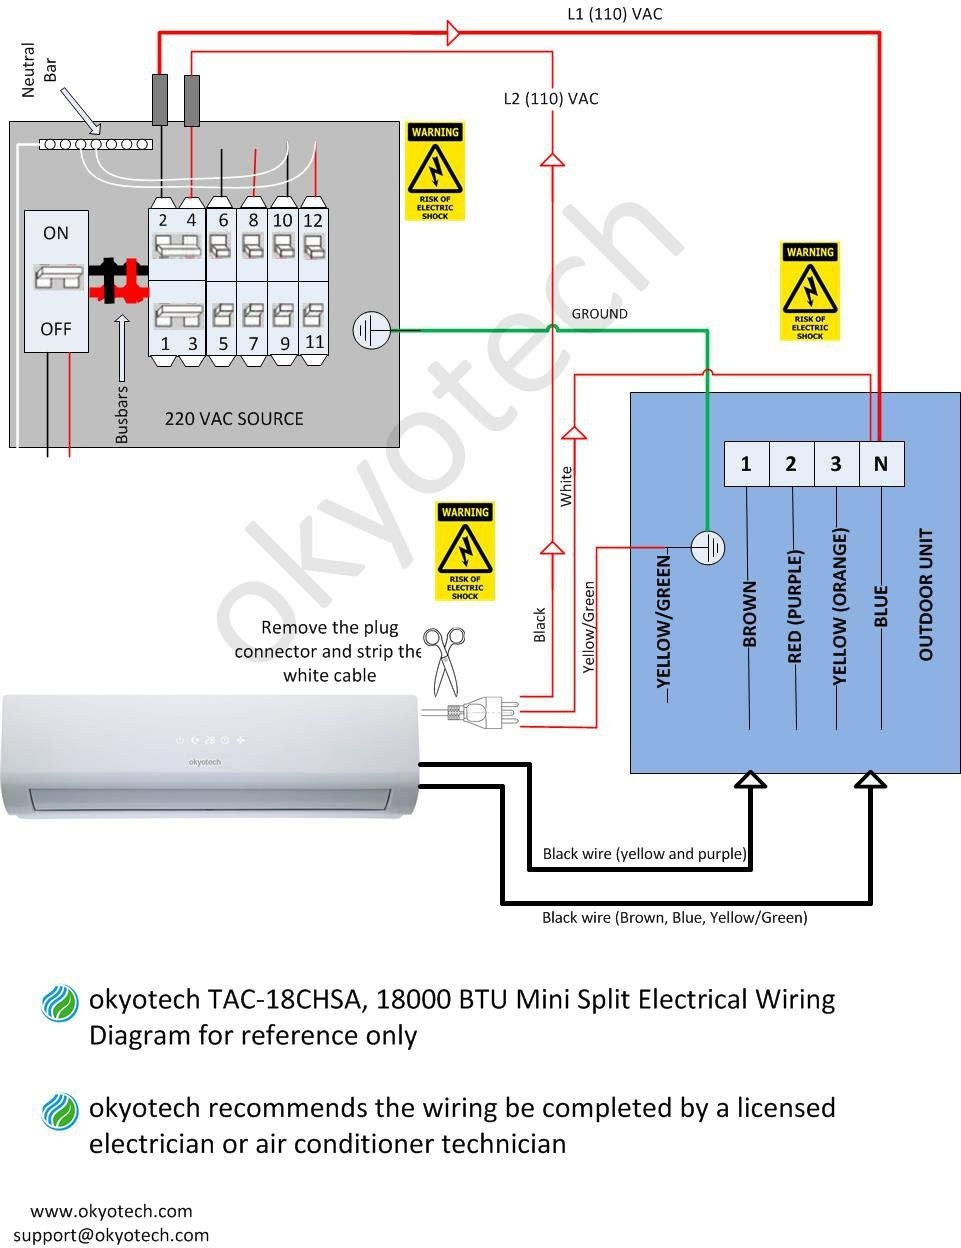 electrical wiring diagram of split ac fujitsu mini split heat pump wiring diagram | free wiring ...